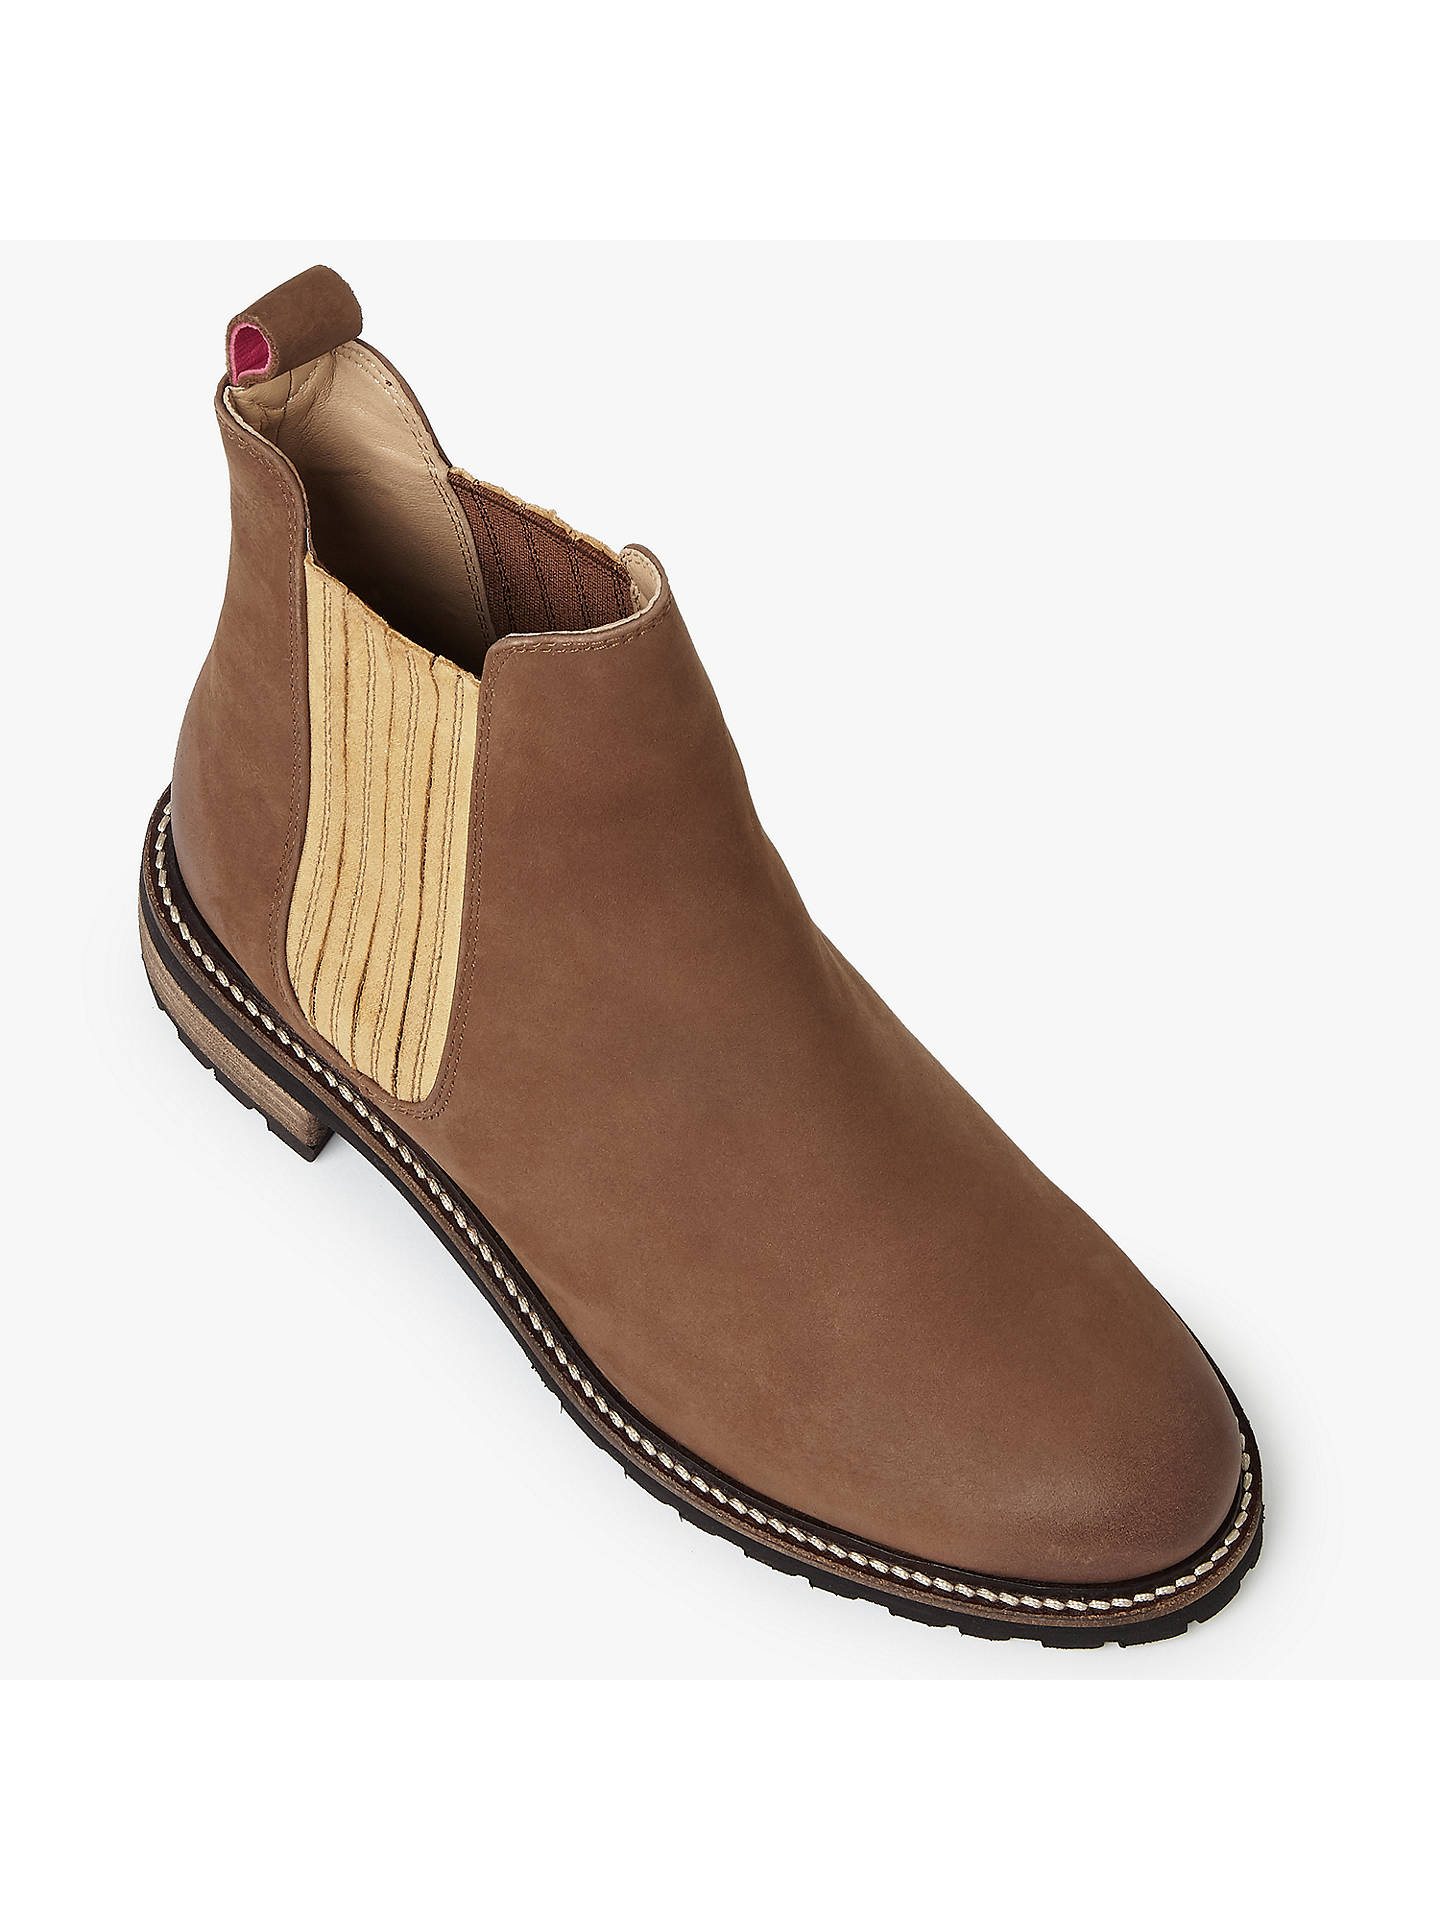 b84134bac52 Joules Clarendon Leather Chelsea Boots, Brown at John Lewis & Partners